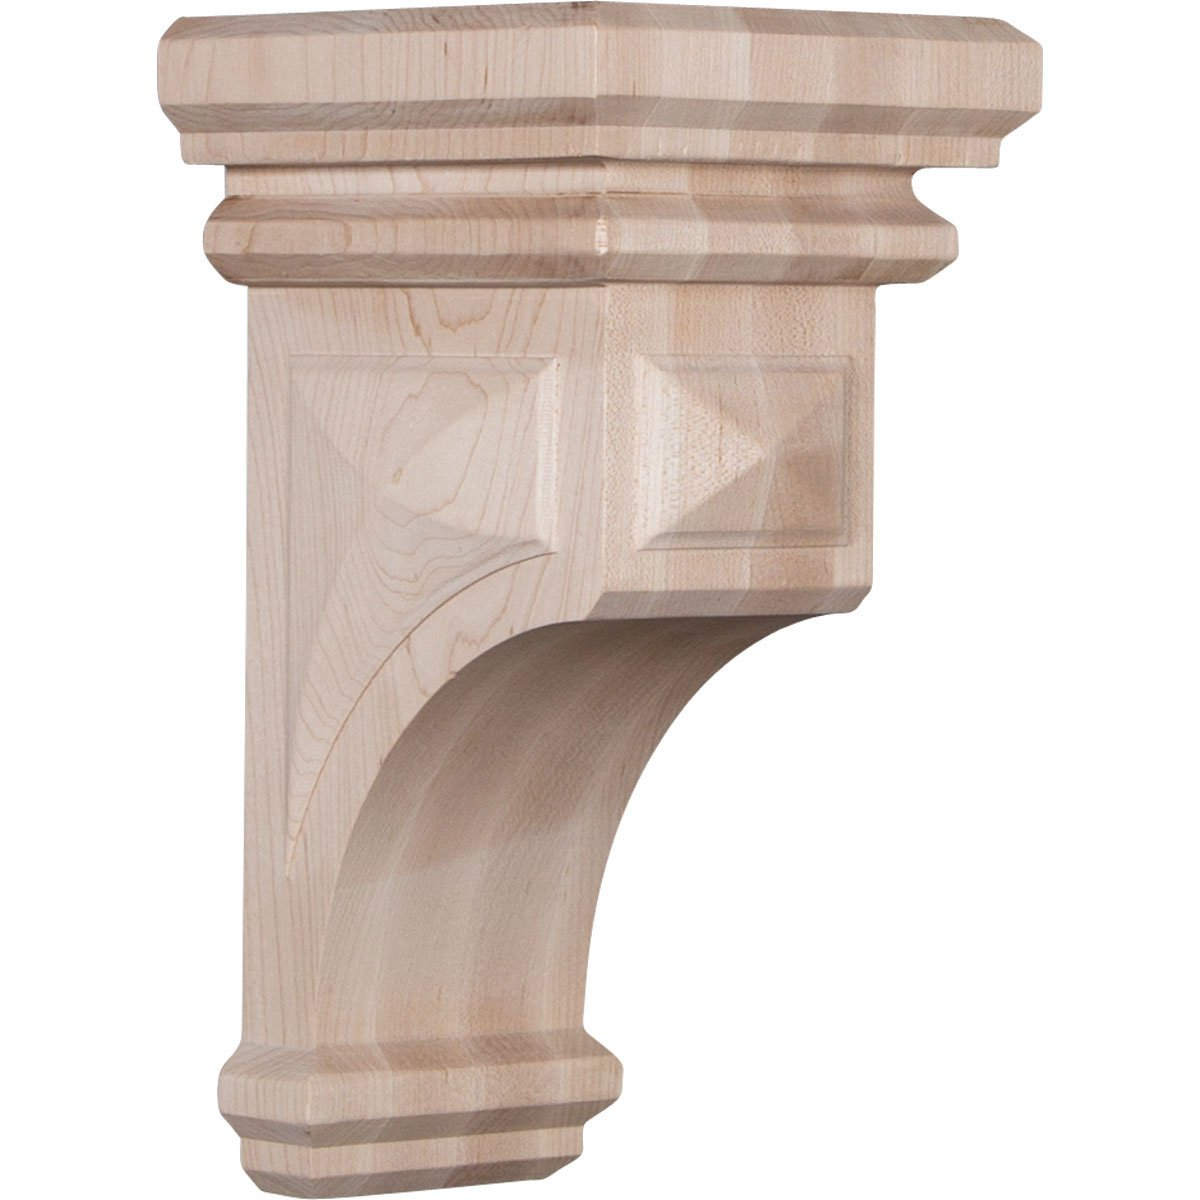 Ekena CORW05X05X10WFRW 5-Inch Width x 5 3/4-Inch Depth x 10-Inch Height Medium Woodruff Wood Corbel - Rubber Wood